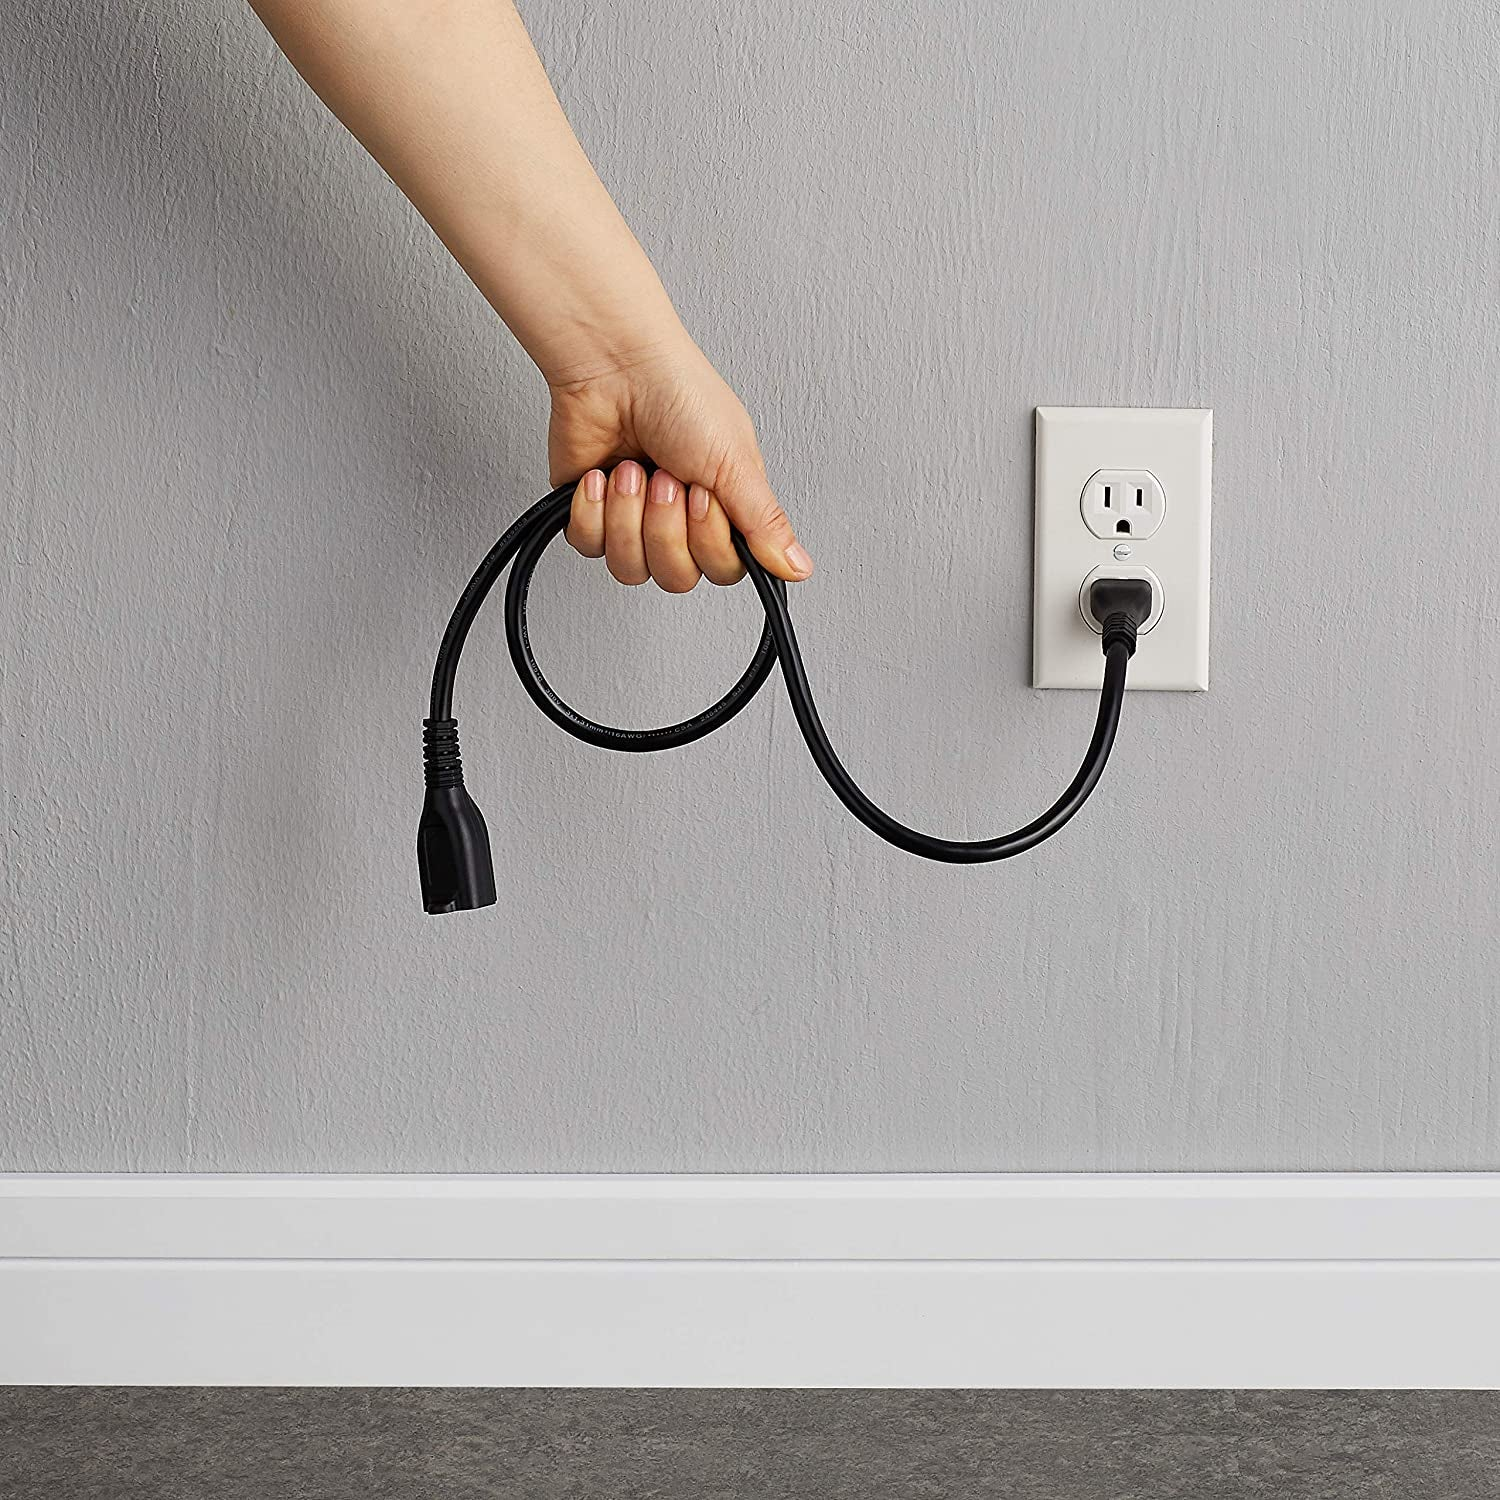 photo of a model holding the extension cord